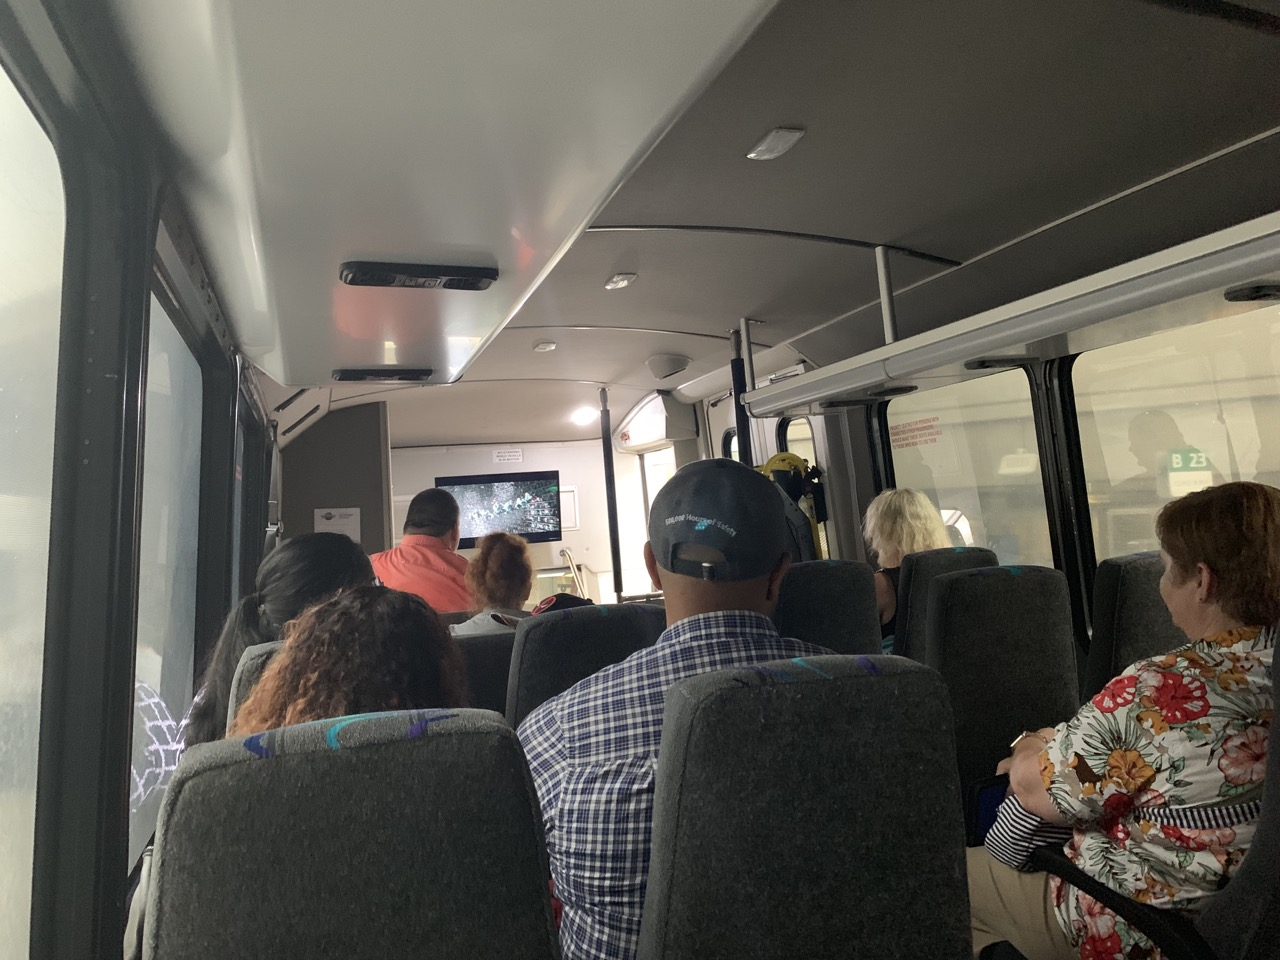 universal orlando summer 2019 trip report part 2 shuttle inside.jpeg